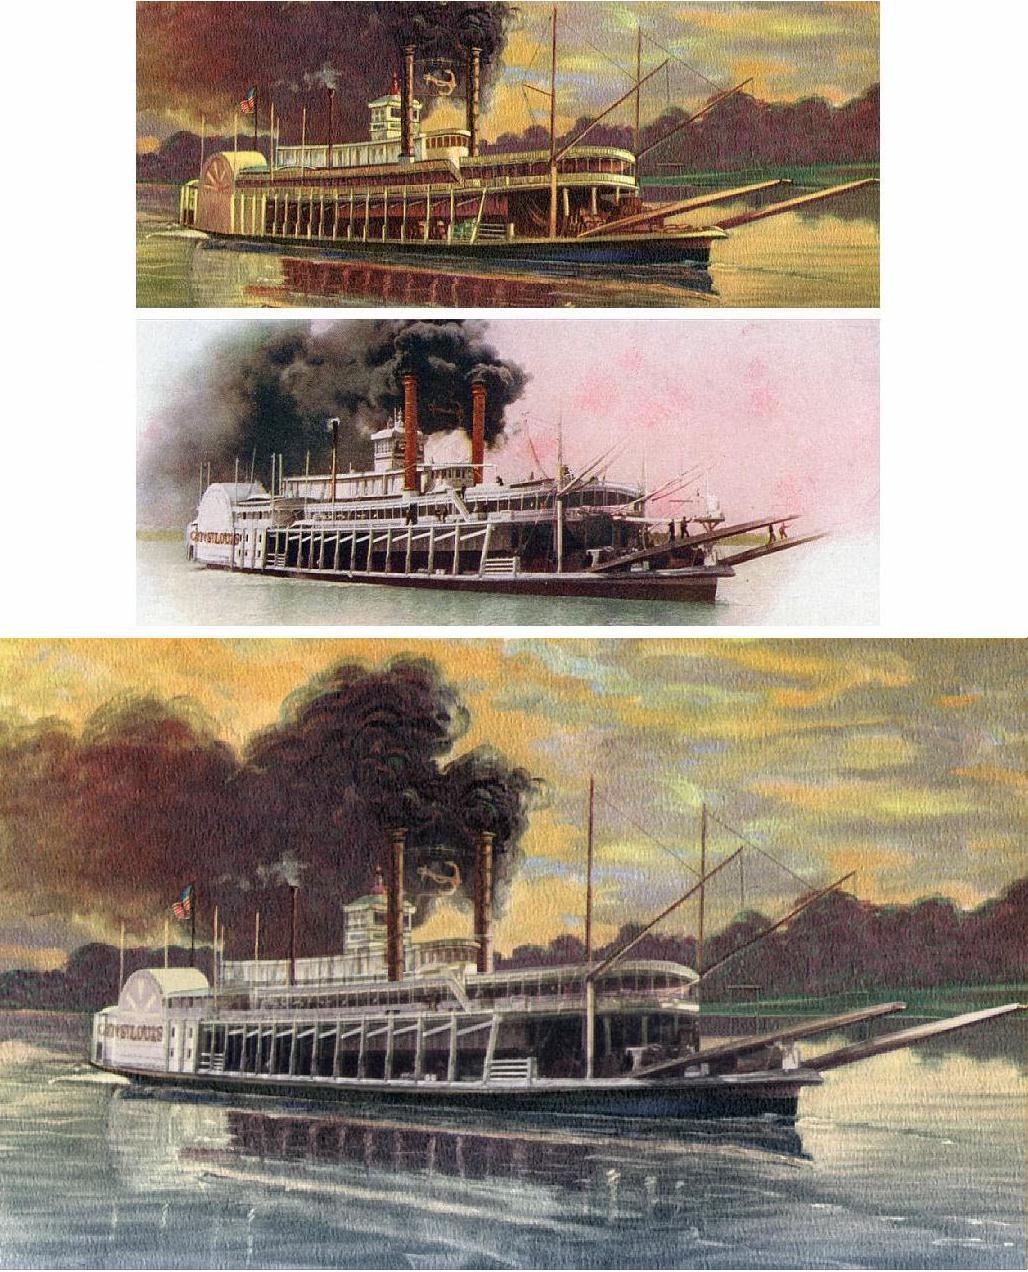 steamboat illustration